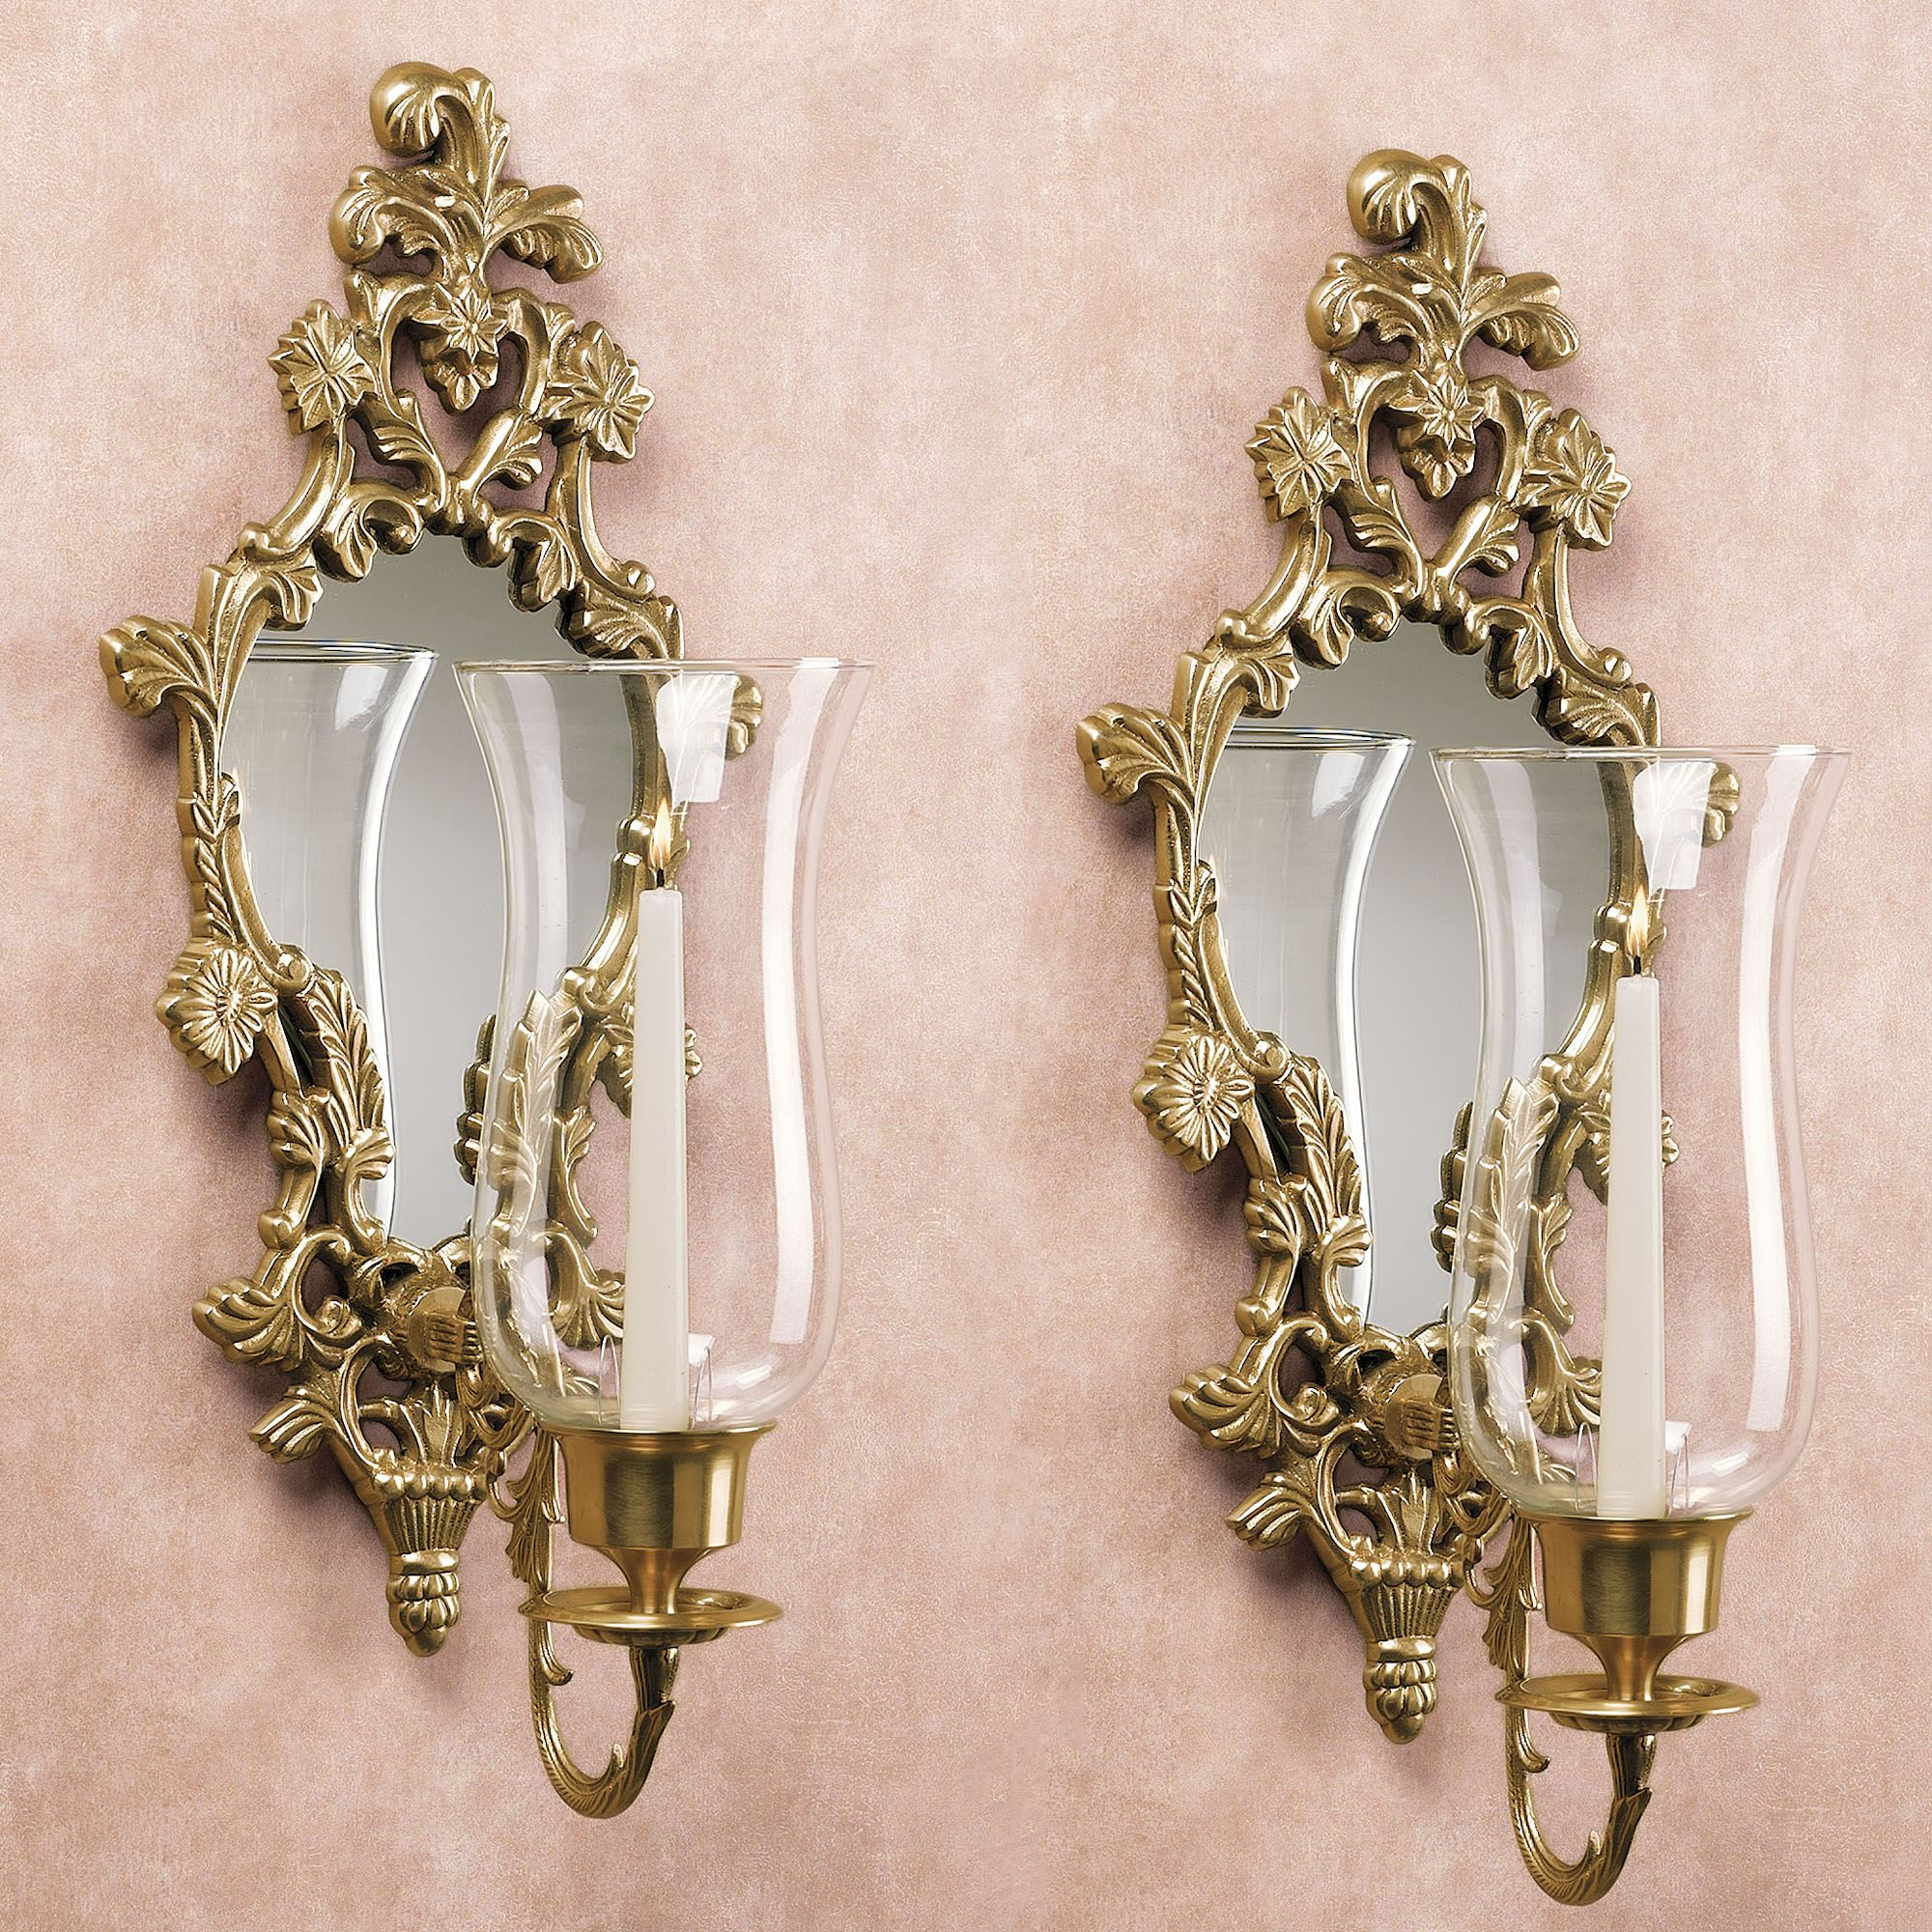 Wall sconces wall candleholders and wall candelabras touch of athea mirrored brass wall sconce pair amipublicfo Image collections